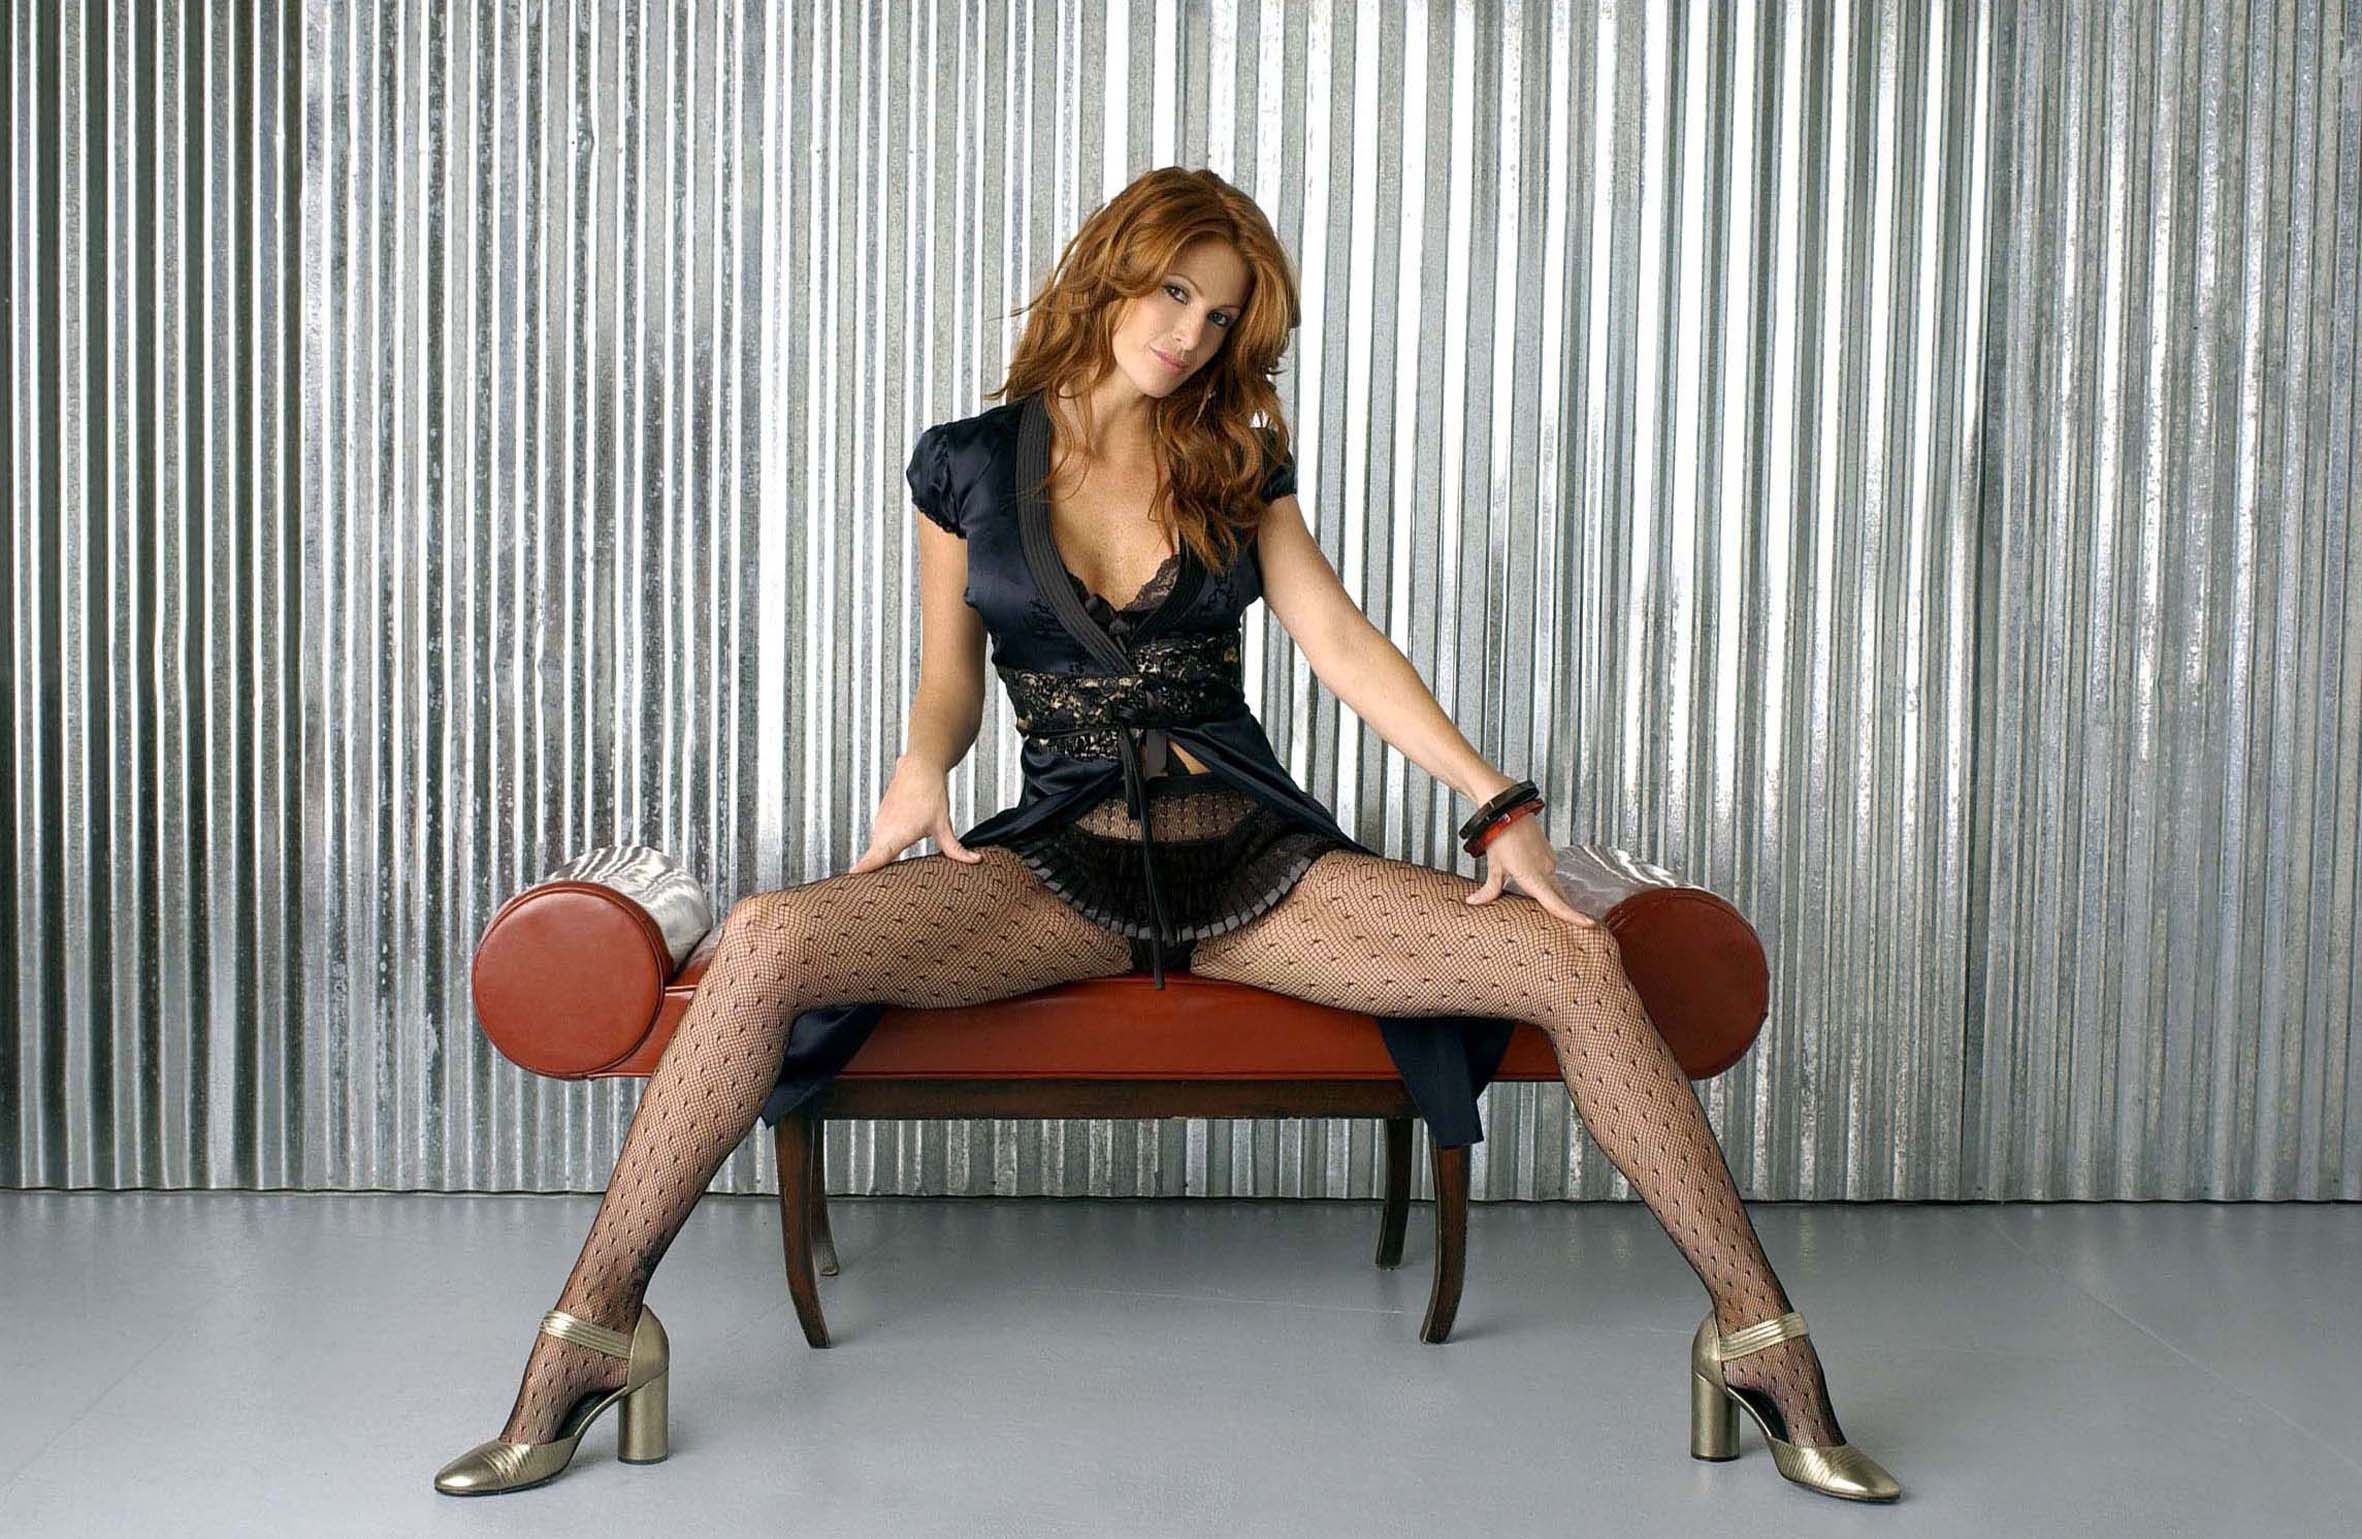 Angie Everhart Wallpaper For Computer